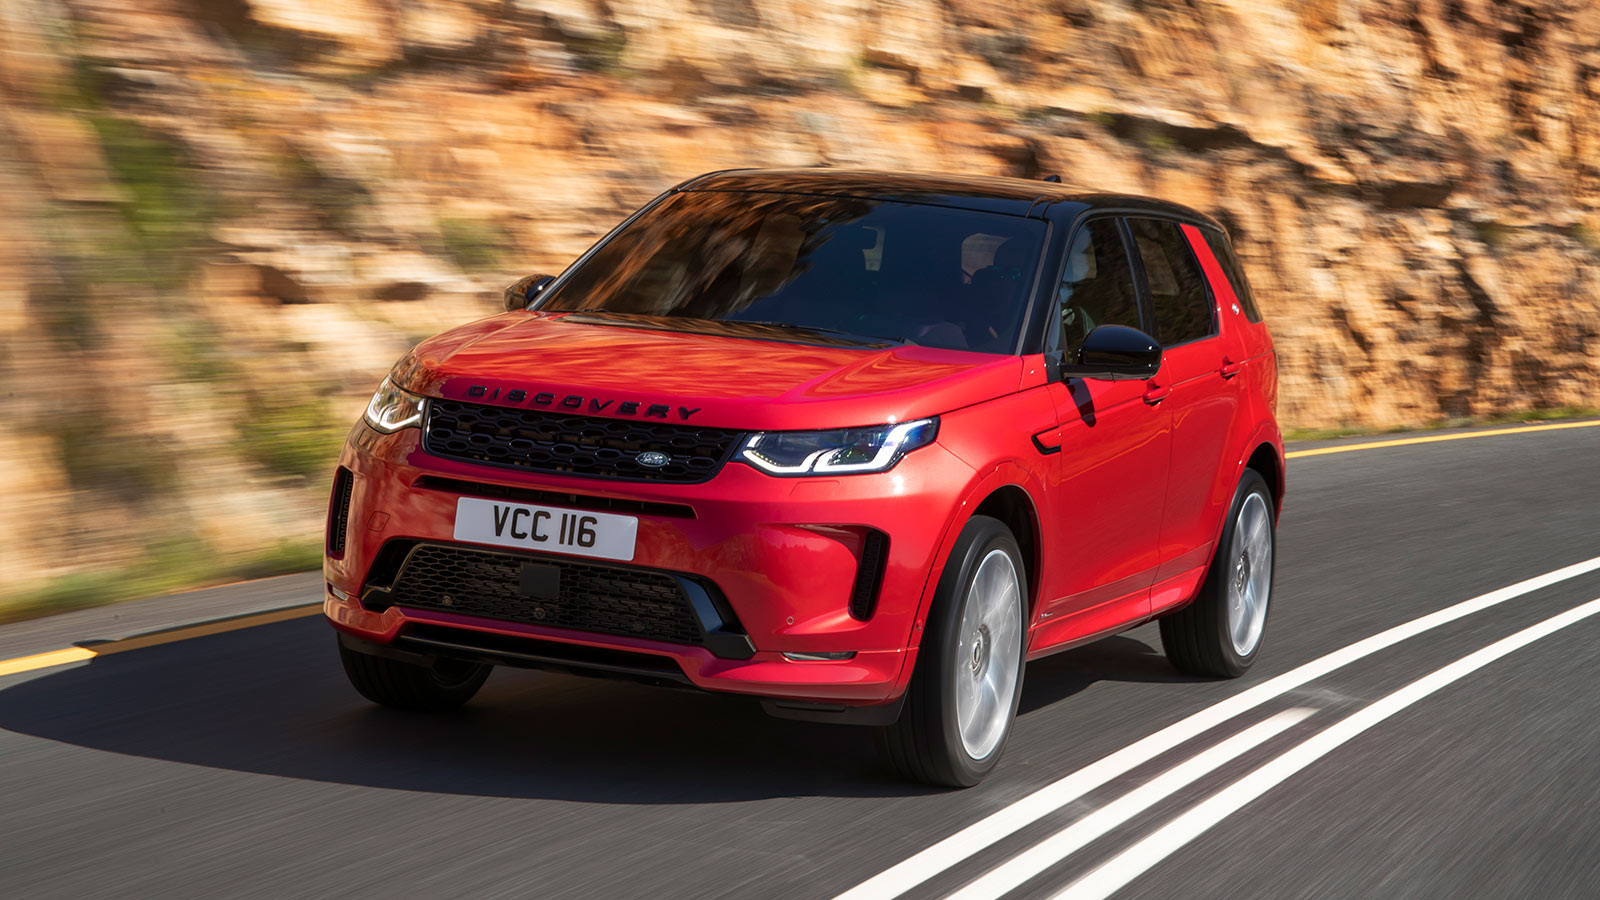 2020 Discovery Sport in motion on a mountain road front side view.